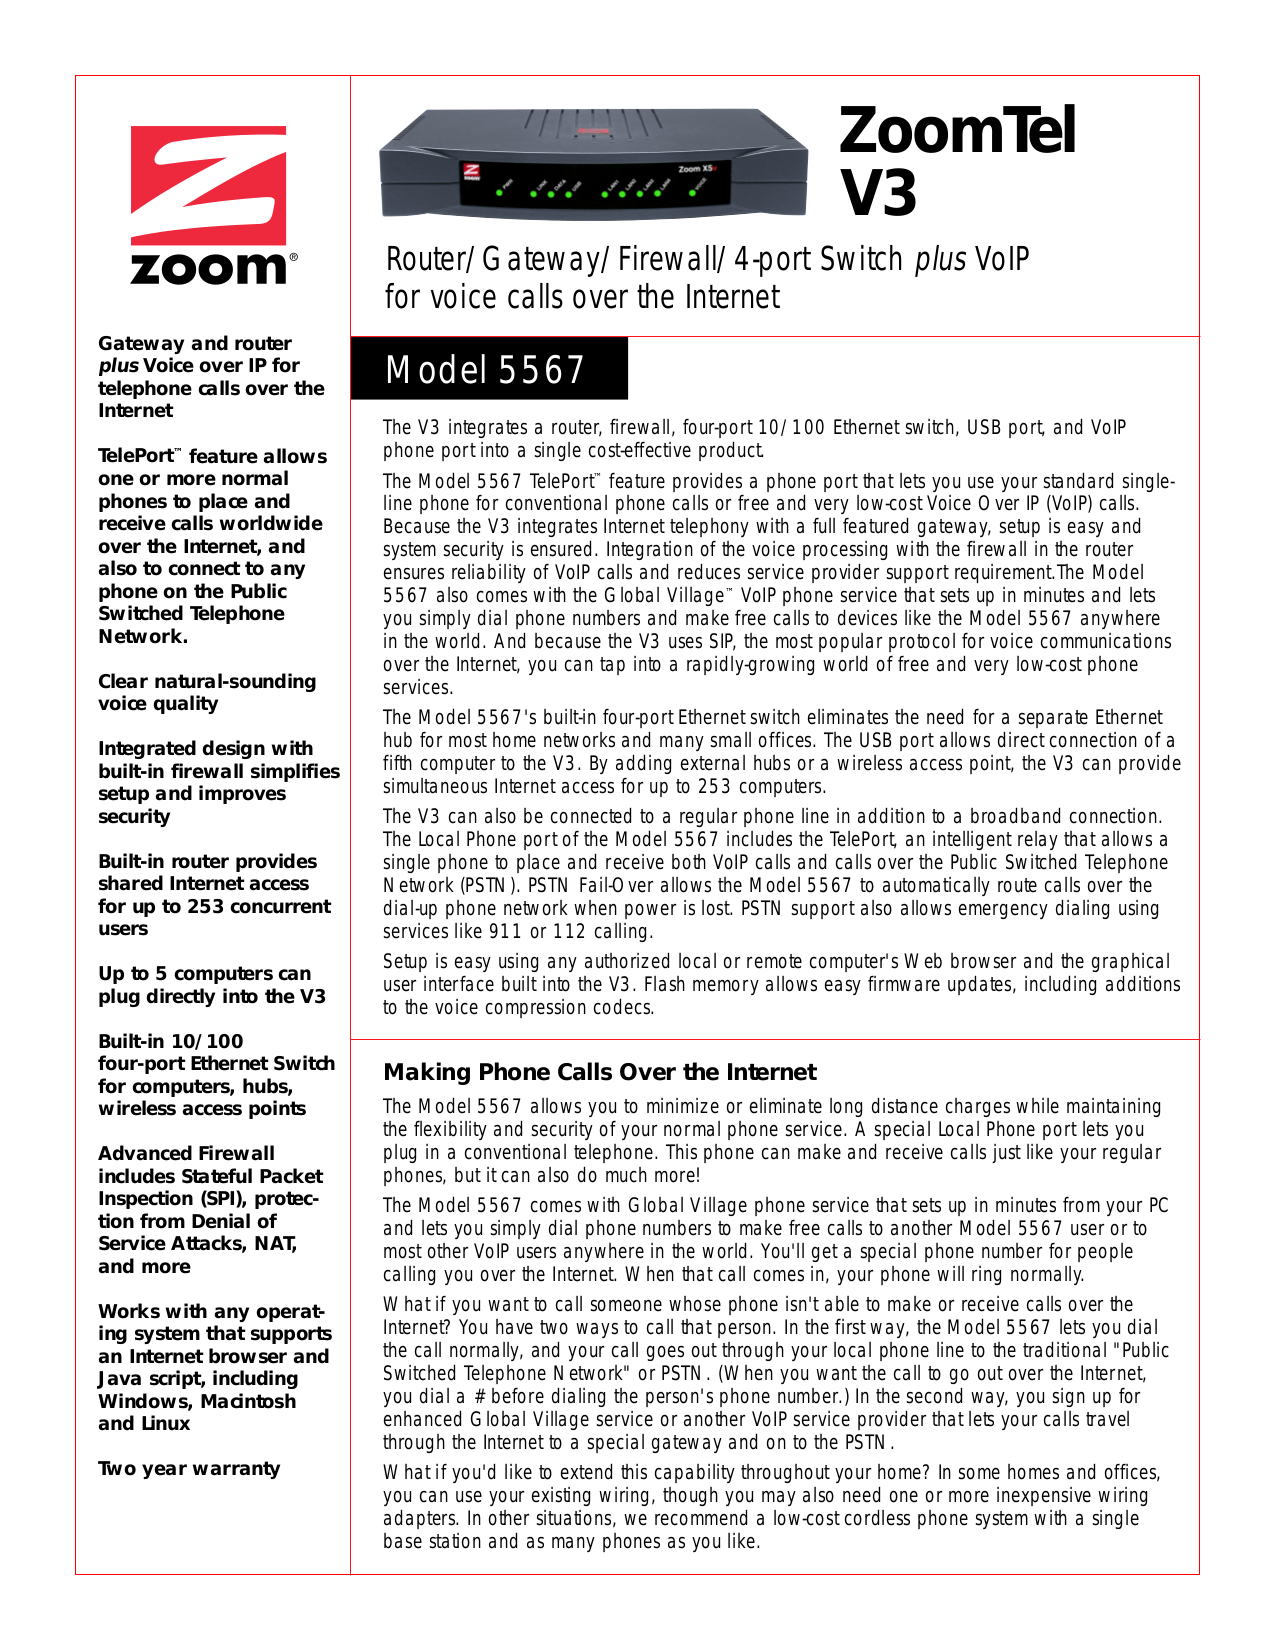 pdf for Zoom Router V3 5567 manual